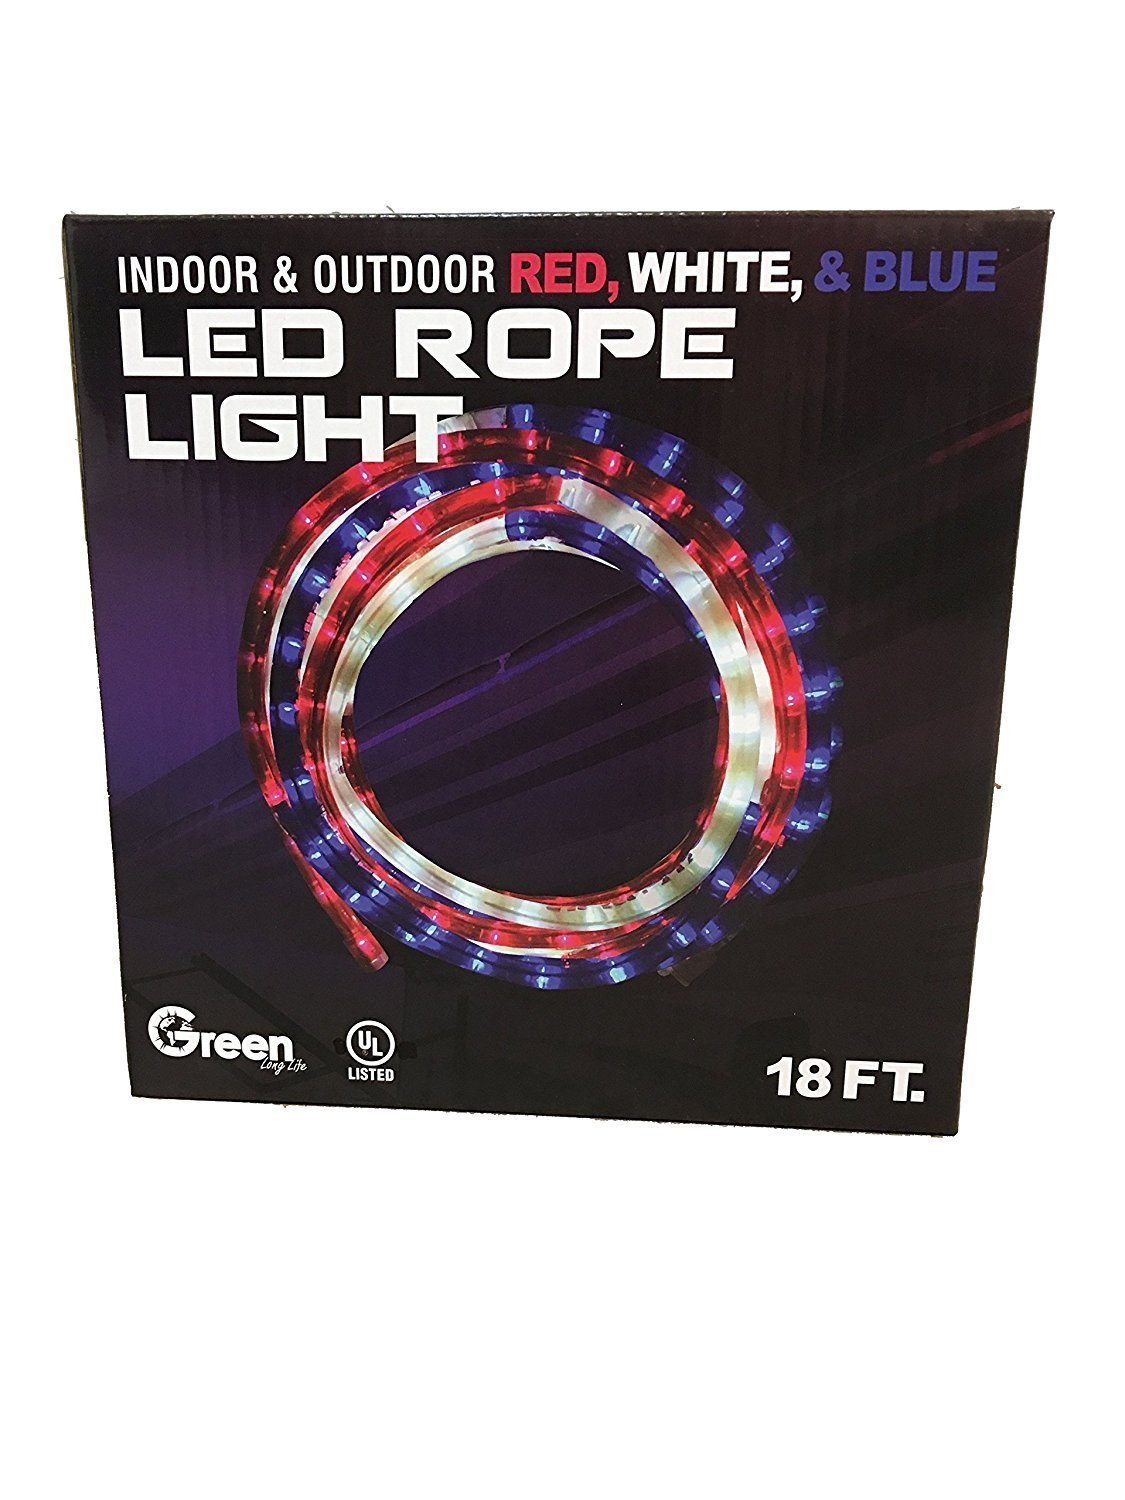 Green longlife 18 feet red white and blue decorative extendable green longlife 18 feet red white and blue decorative extendable led rope light rv july 4th memorial day patriotic lights 1 pack aloadofball Images